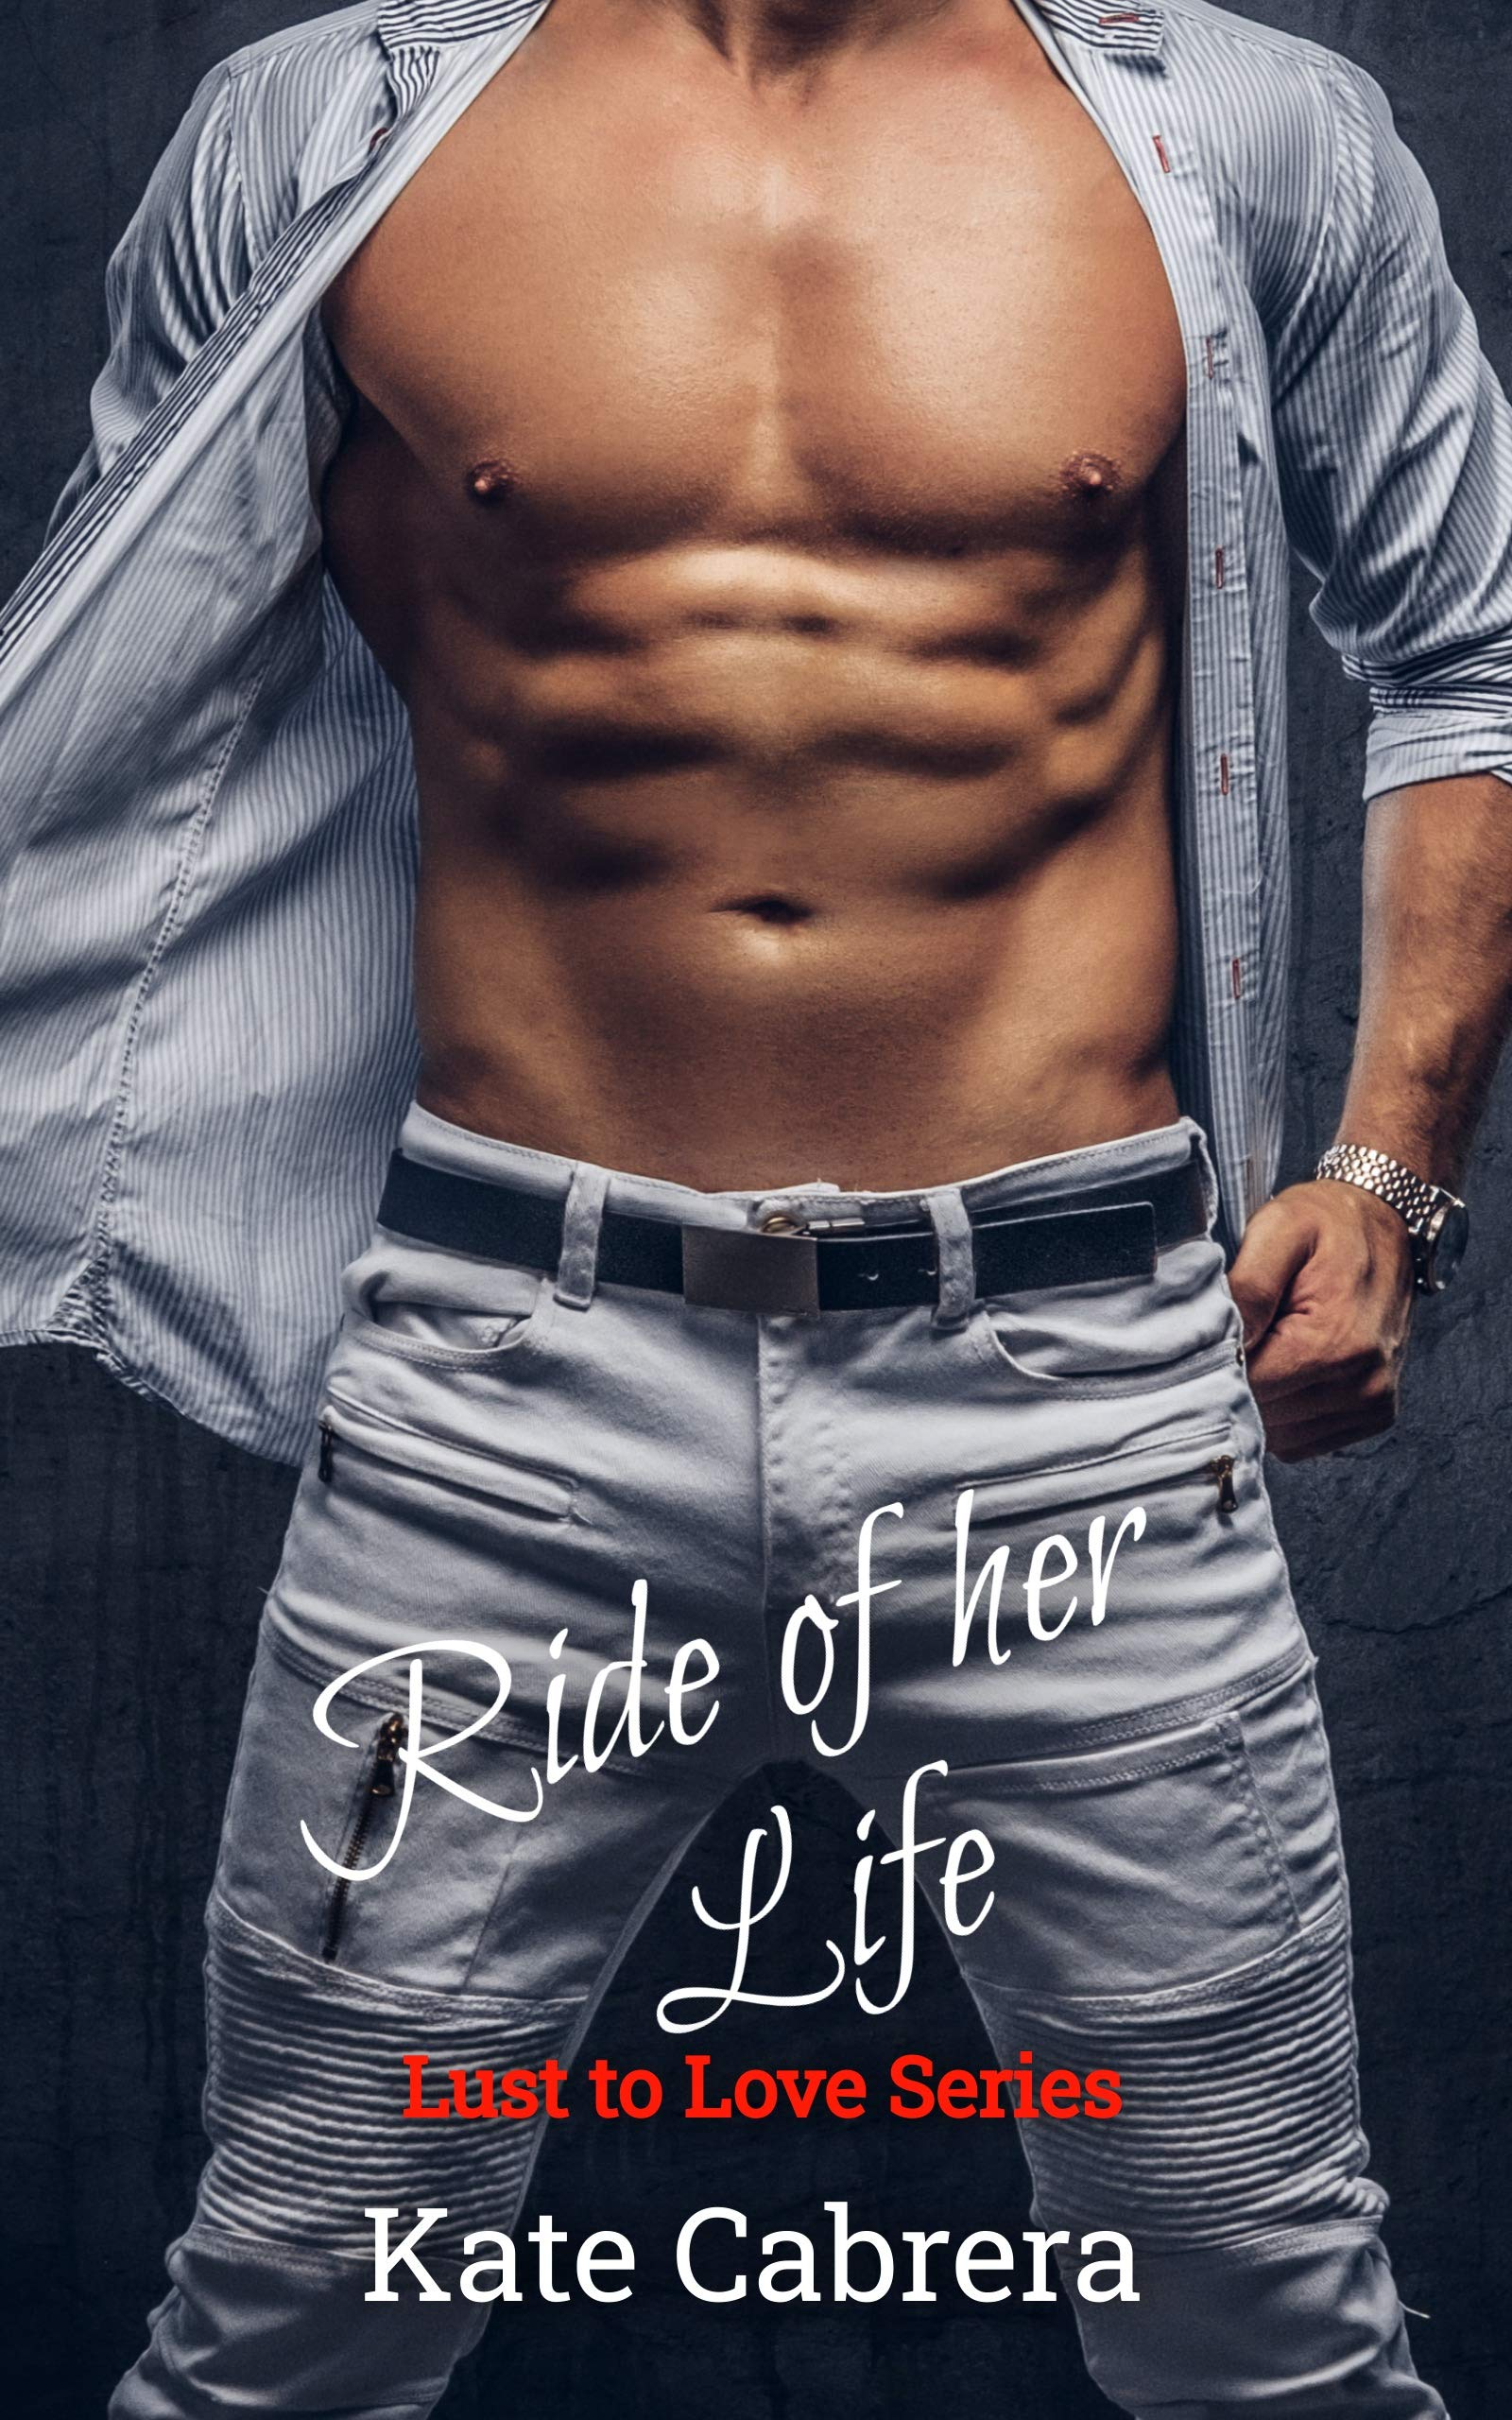 Ride of her Life: Lust to Love Series